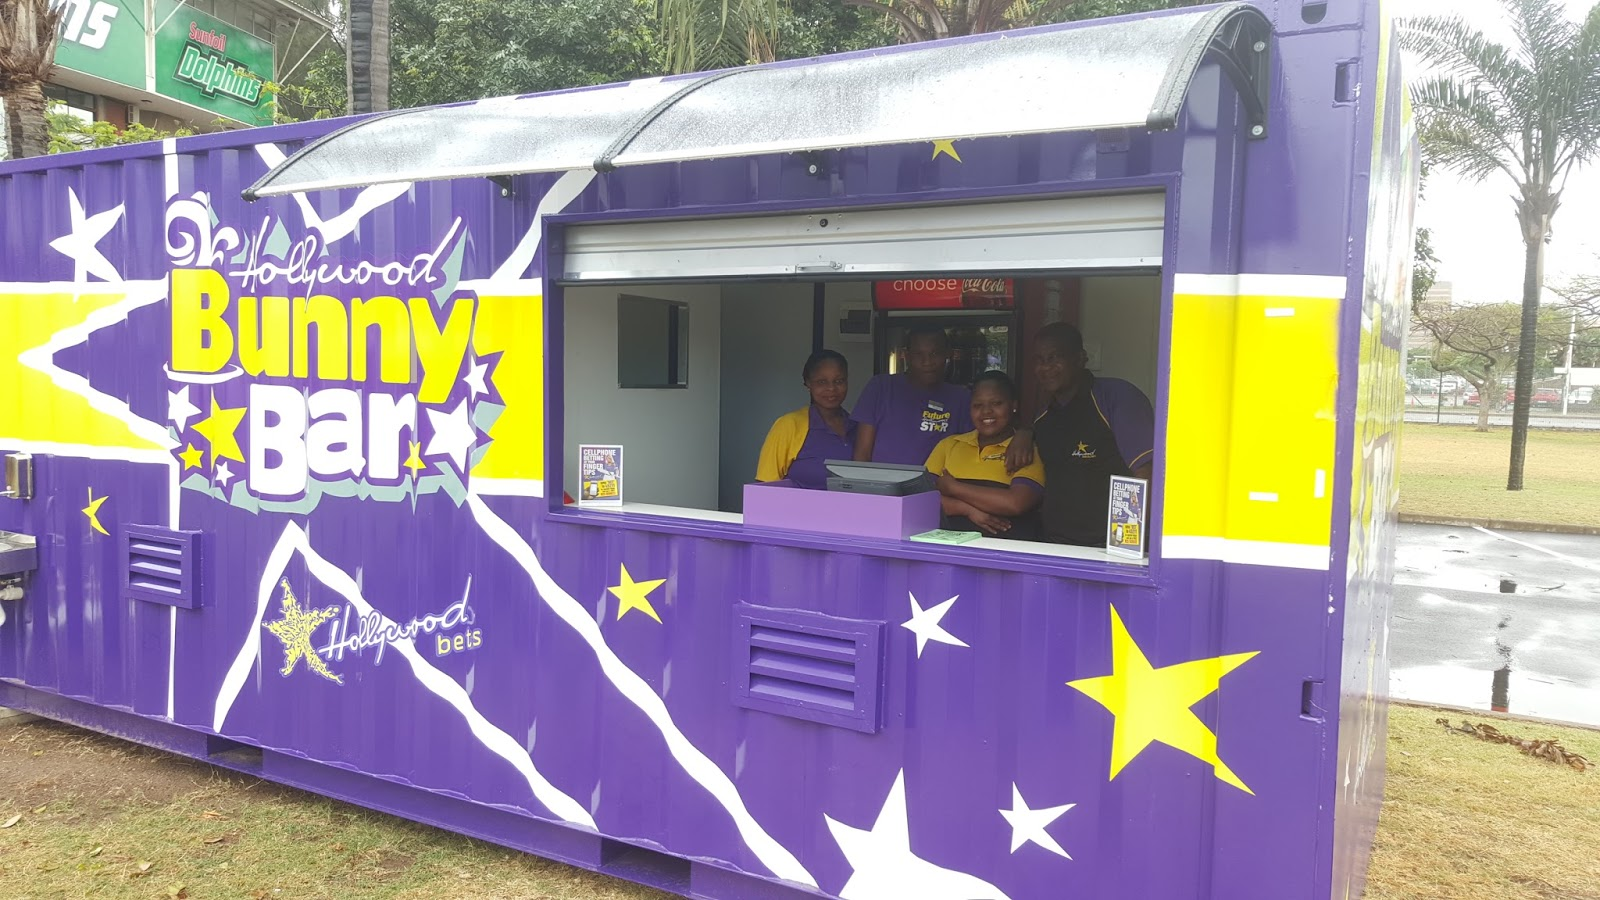 Hollywood Bunny Bar At Kingsmead Cricket Ground Is Now Open 7 Days A Week From 10am To 6pm